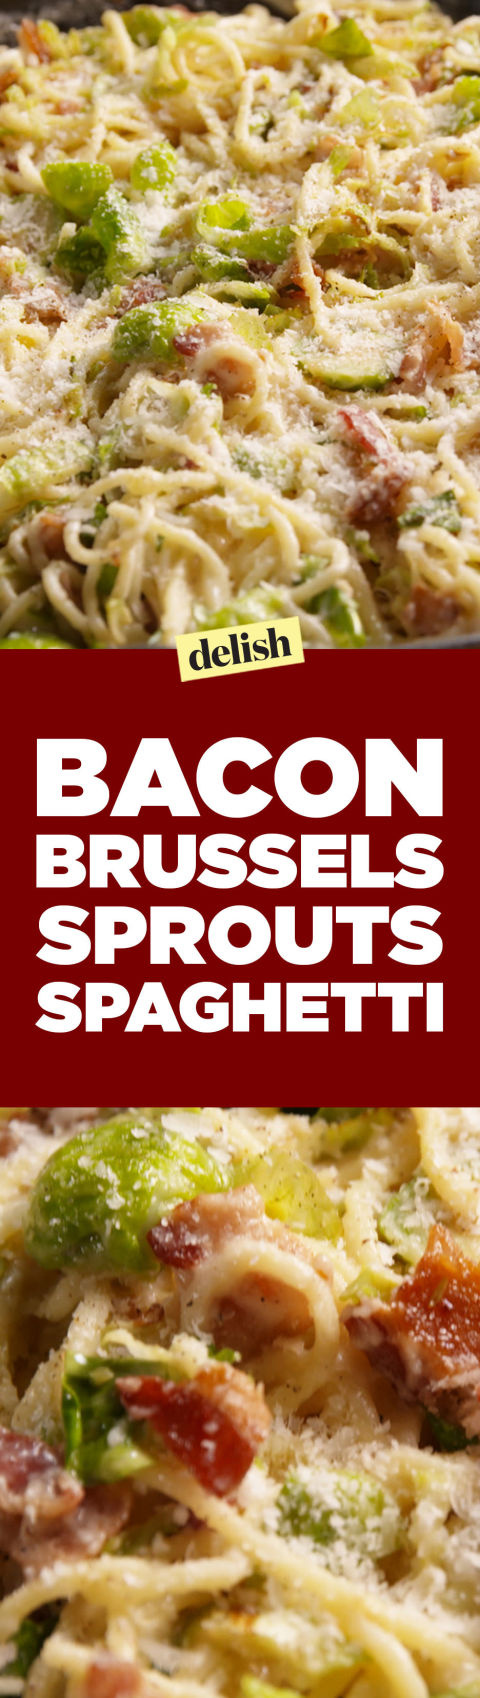 best bacon brussels sprouts spaghetti recipe how to make bacon brussels sprouts spaghetti. Black Bedroom Furniture Sets. Home Design Ideas